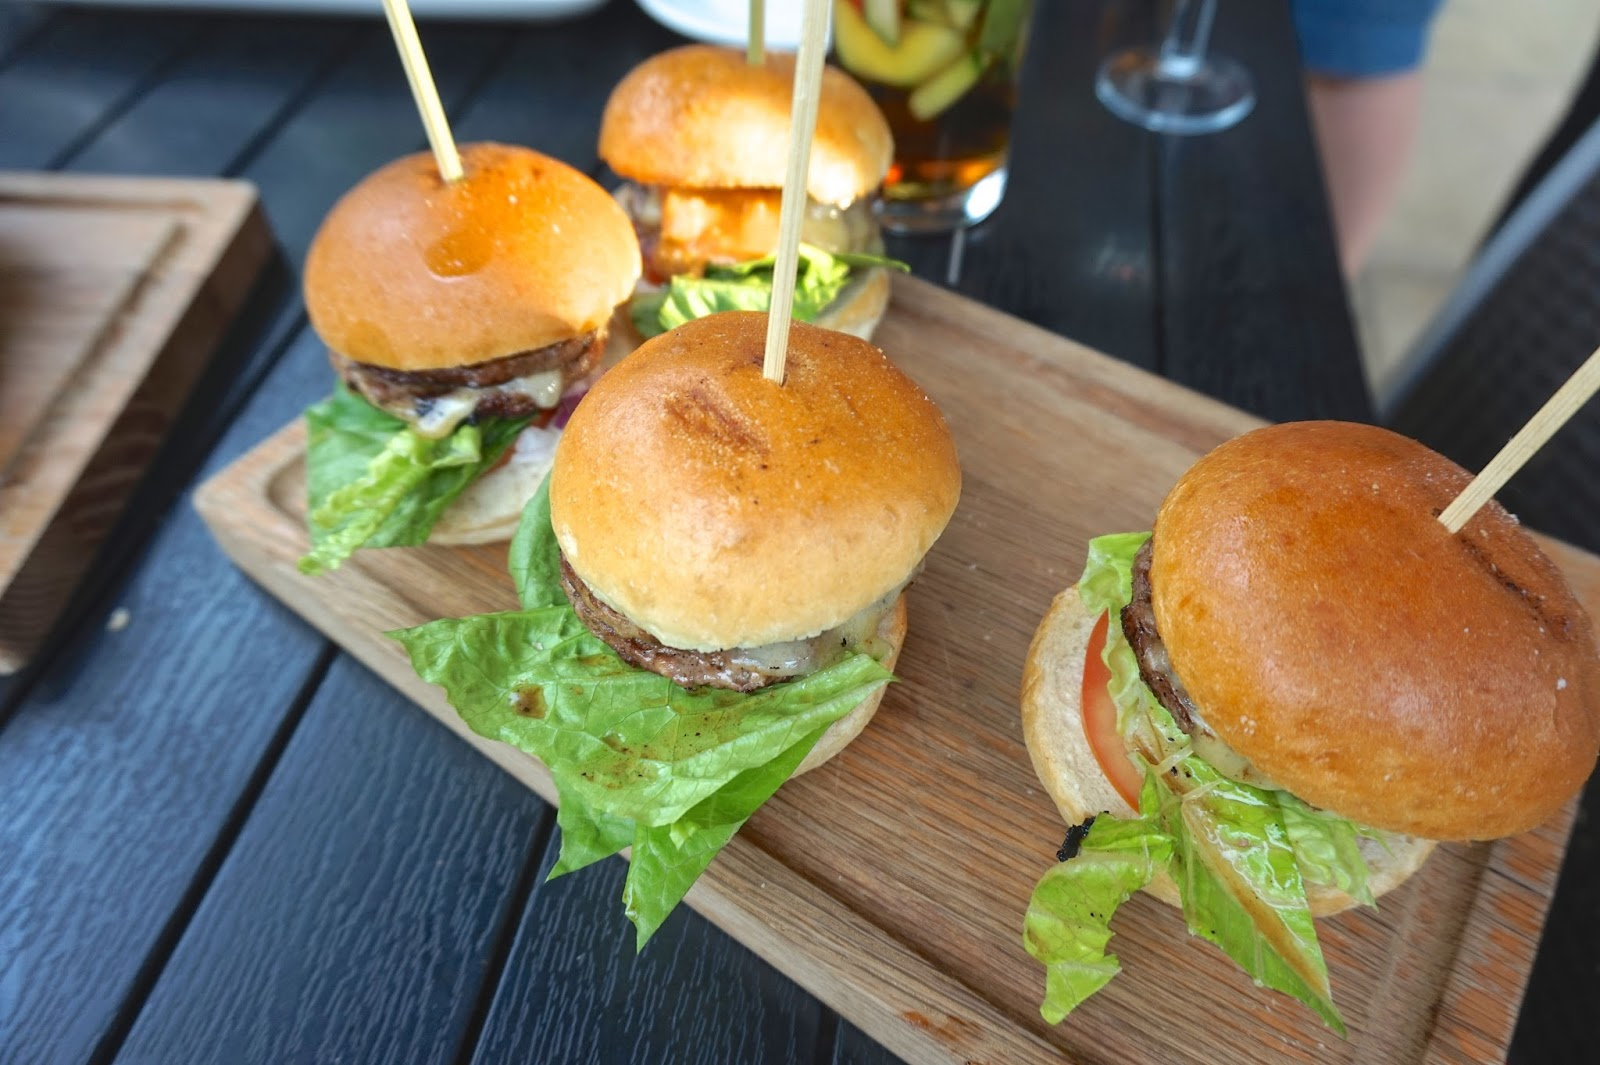 Beefeater grill summer menu sliders